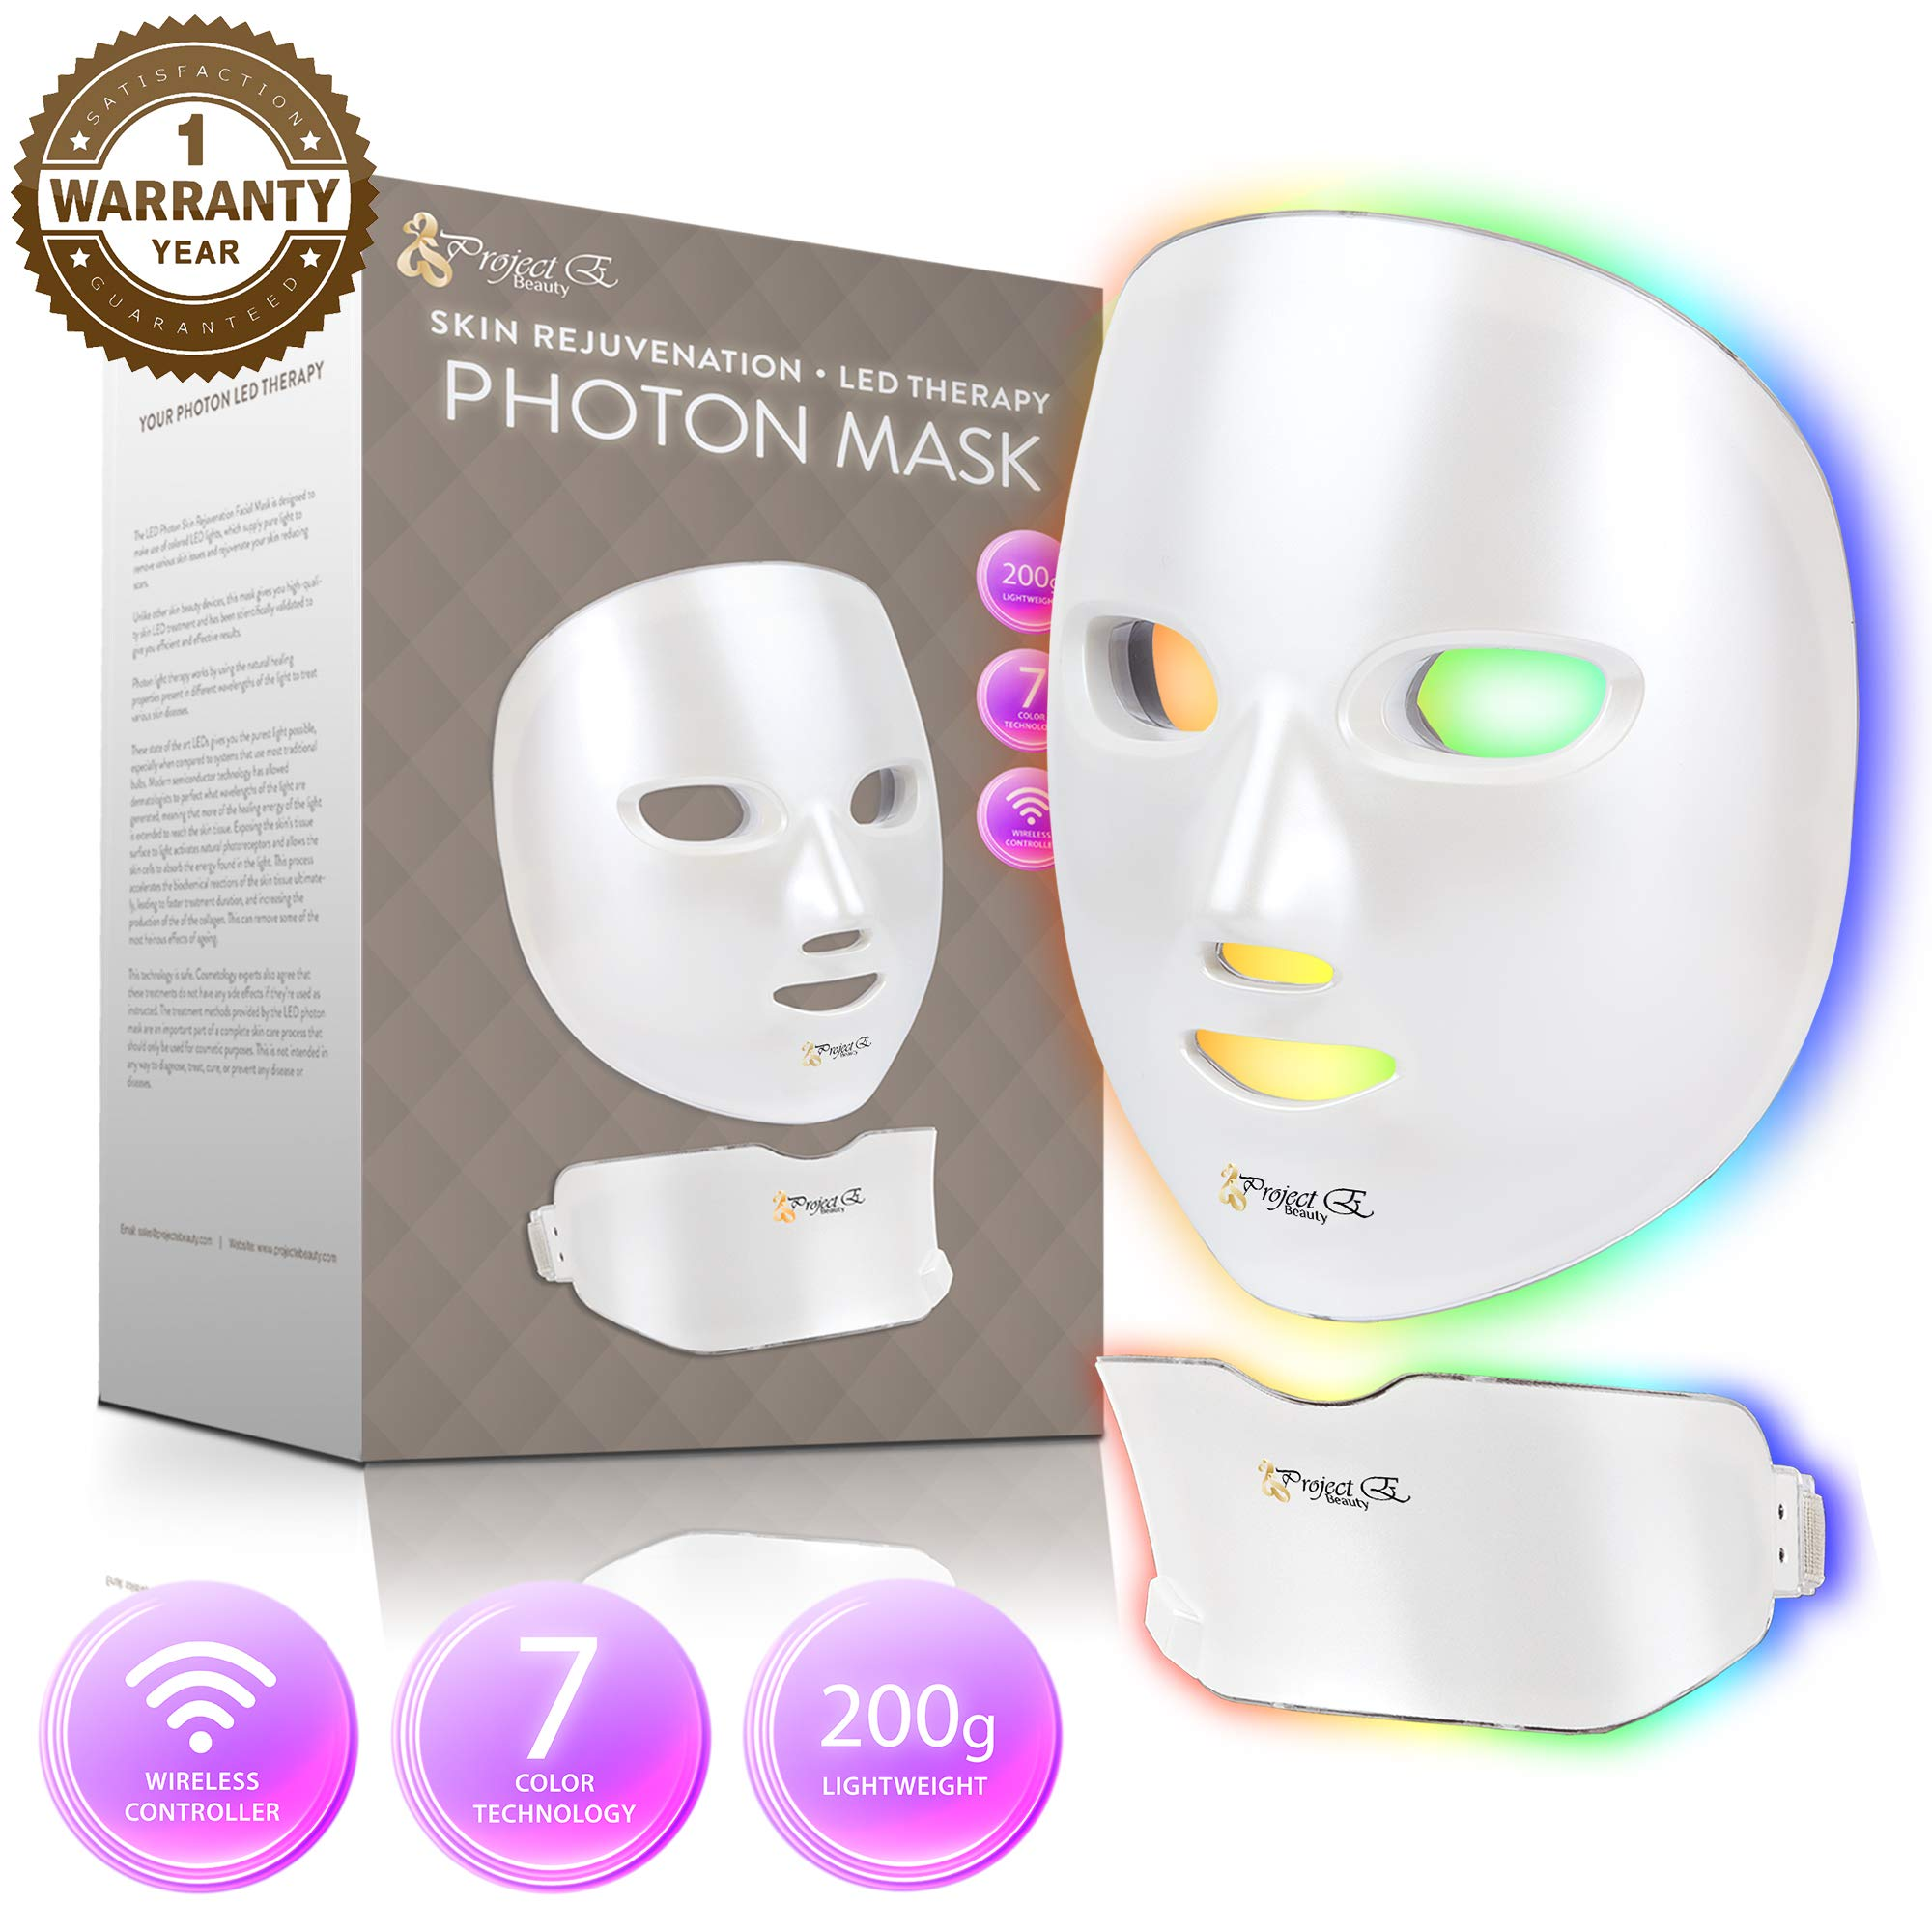 Project E Beauty 7 Colors LED Mask Face & Neck Photon Light Therapy For Skin Rejuvenation, Collagen, Wrinkle, Facial Skin Care Wireless Mask (Face and Neck)